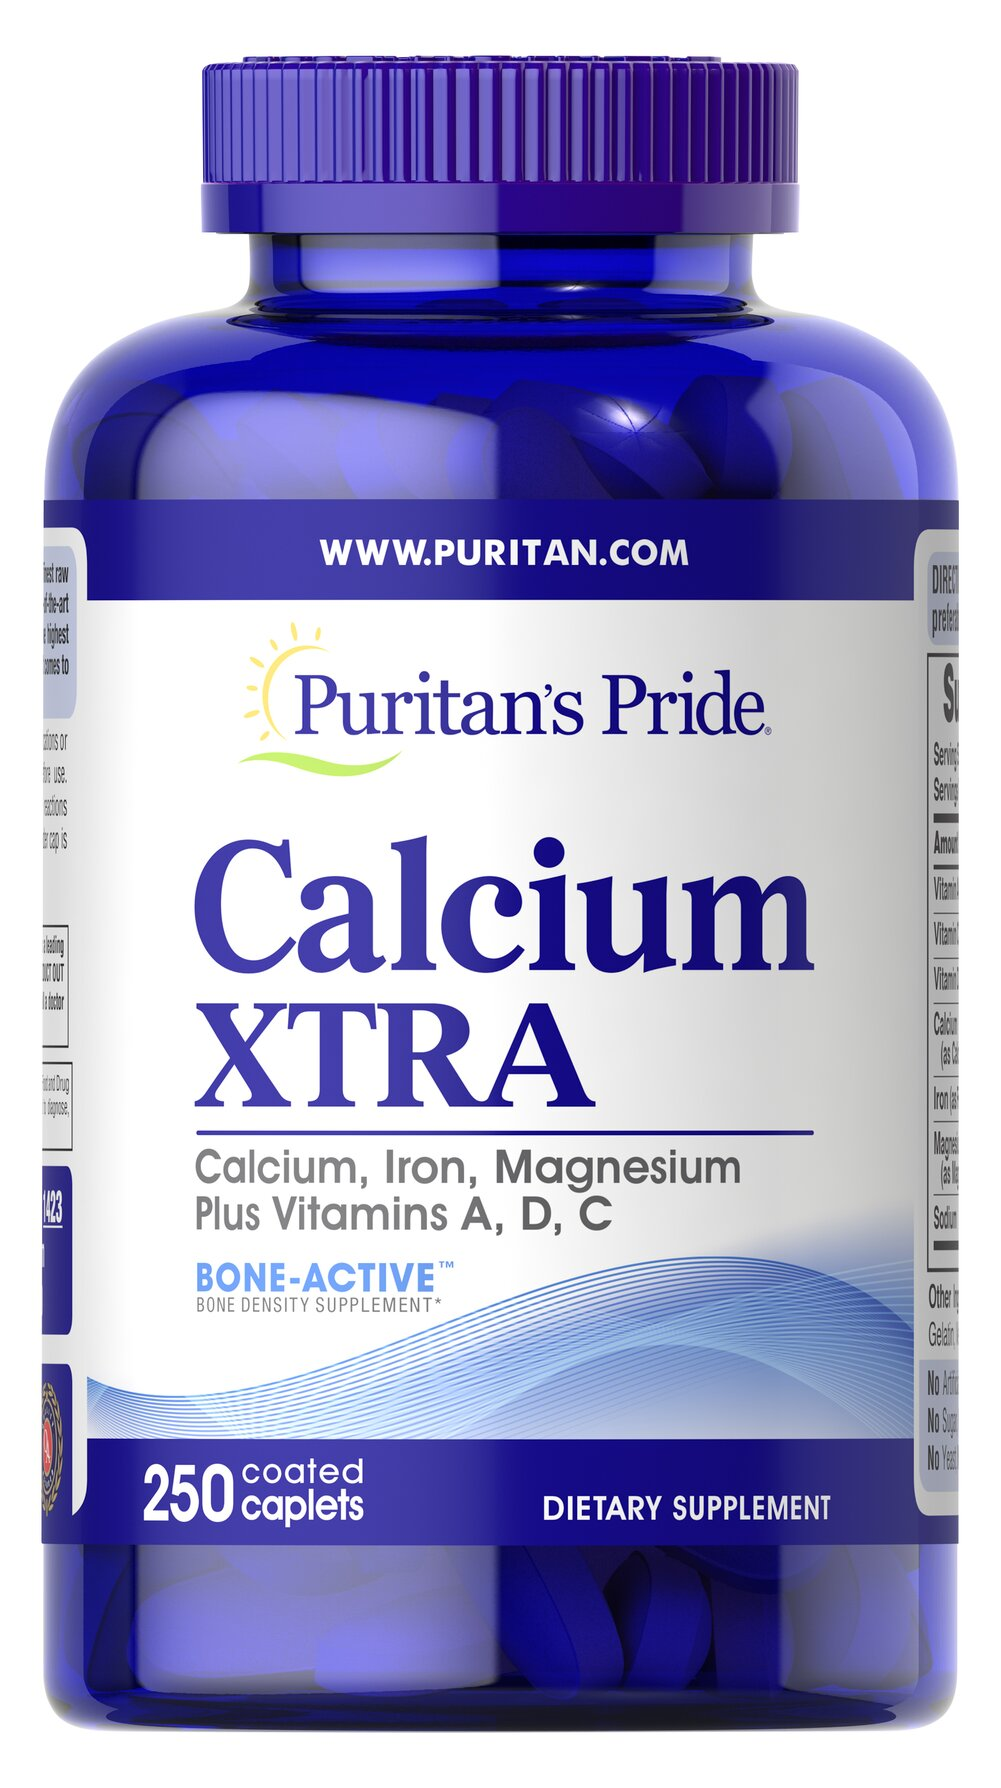 Calcium Xtra <p>Calcium is essential for building healthy bones and teeth.**  To be sure you are getting enough calcium, try Calcium Xtra tablets.  You get natural calcium plus added vitamins (vitamins A, C and D) and minerals (Iron and Magnesium) that work synergistically to give you maximum nutritional protection - in a NEW faster-acting formula.</p> 250 Caplets  $17.09